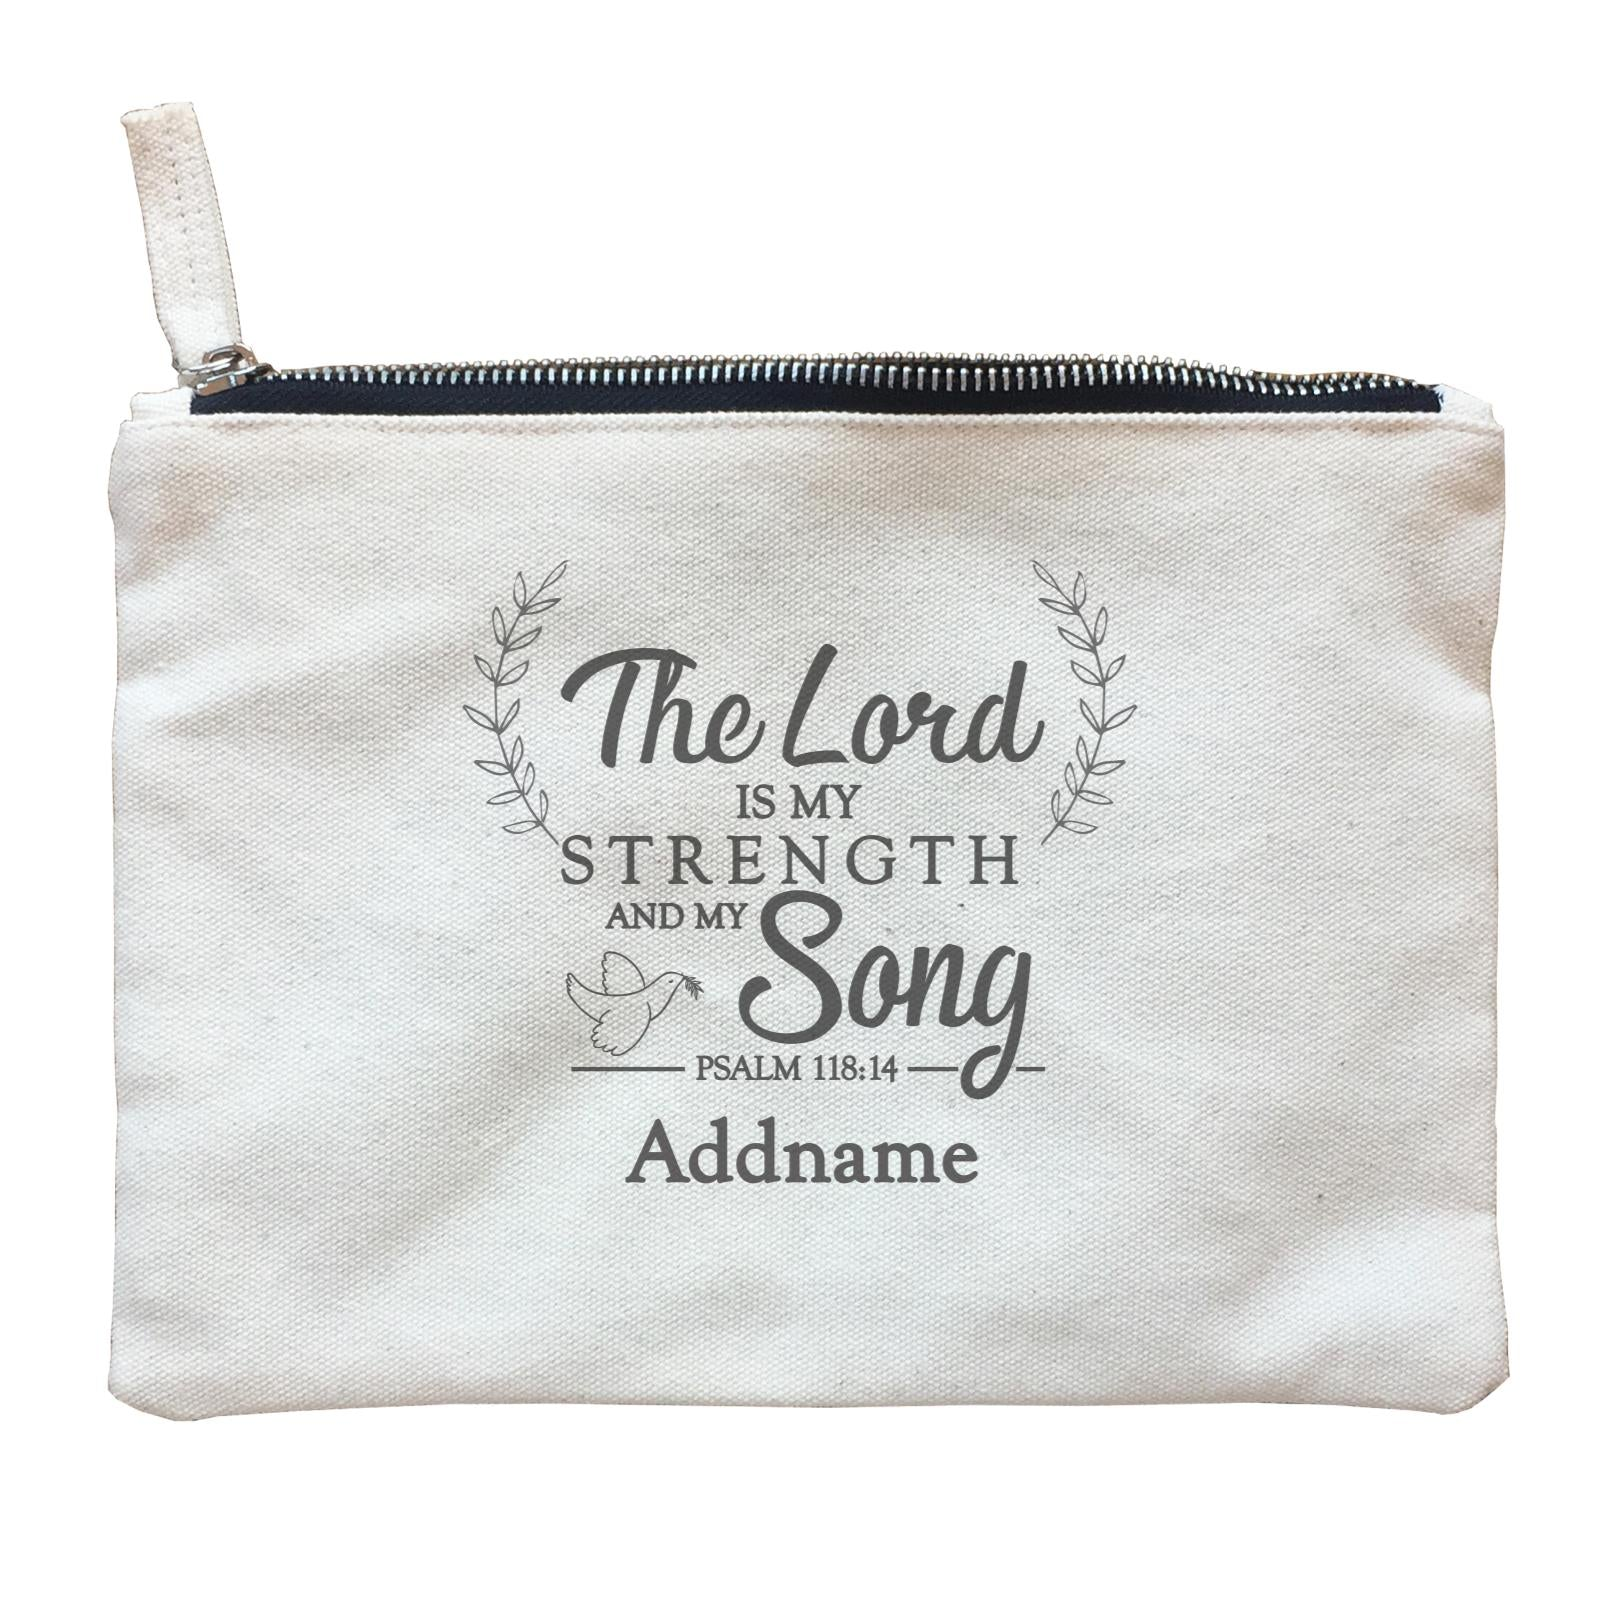 Christian Series The Lord Is My Strength Song Psalm 118.14 Addname Zipper Pouch